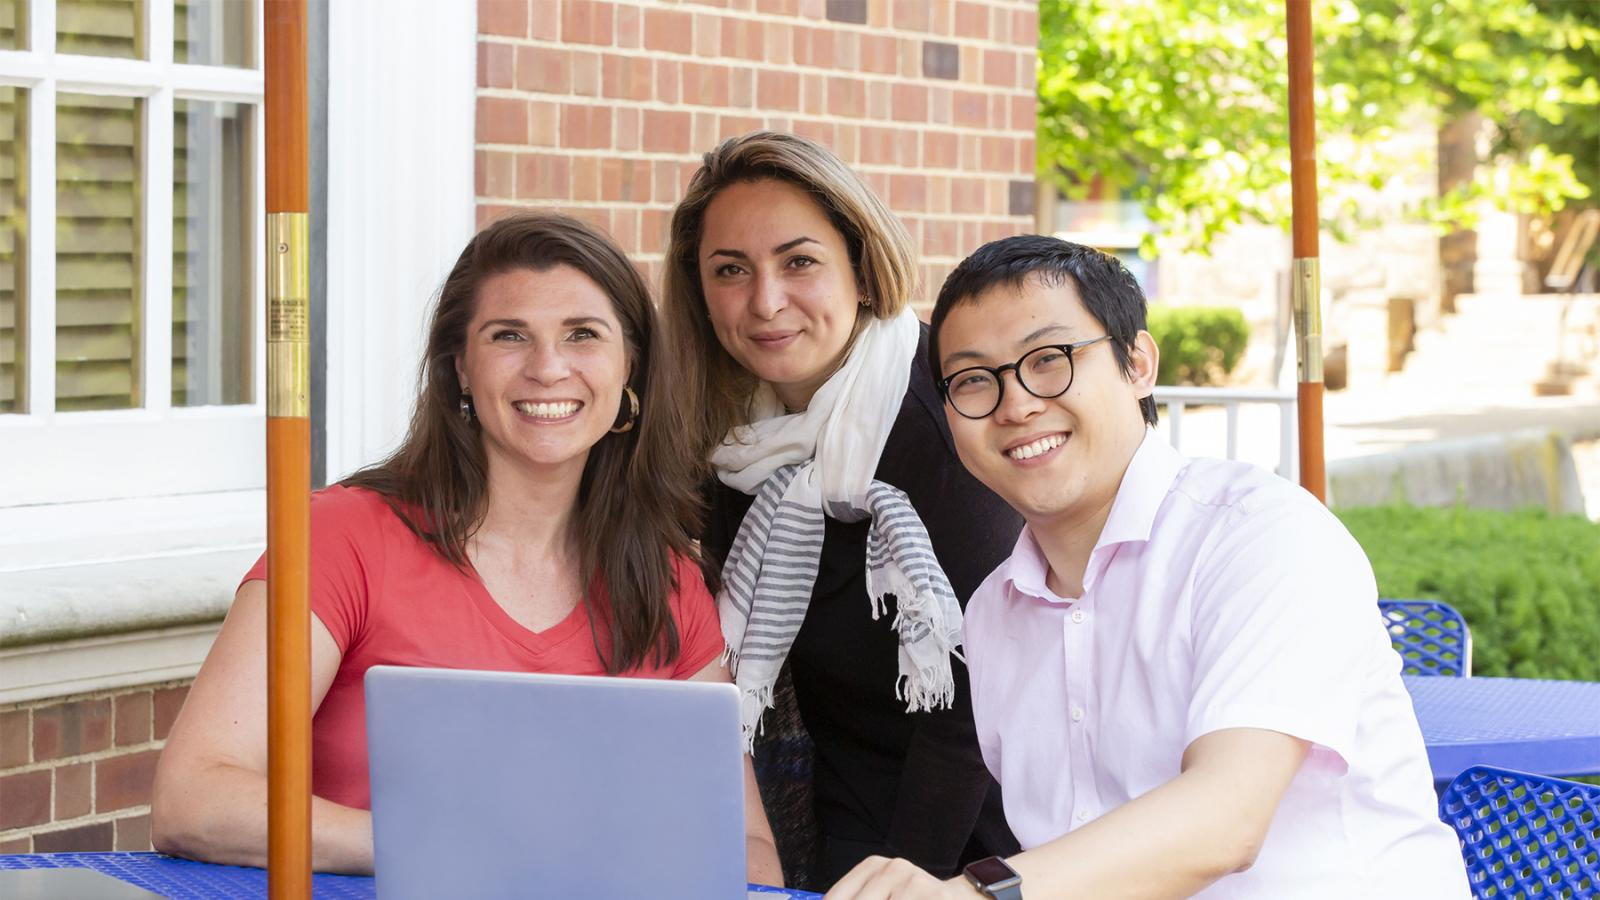 PhD students on patio